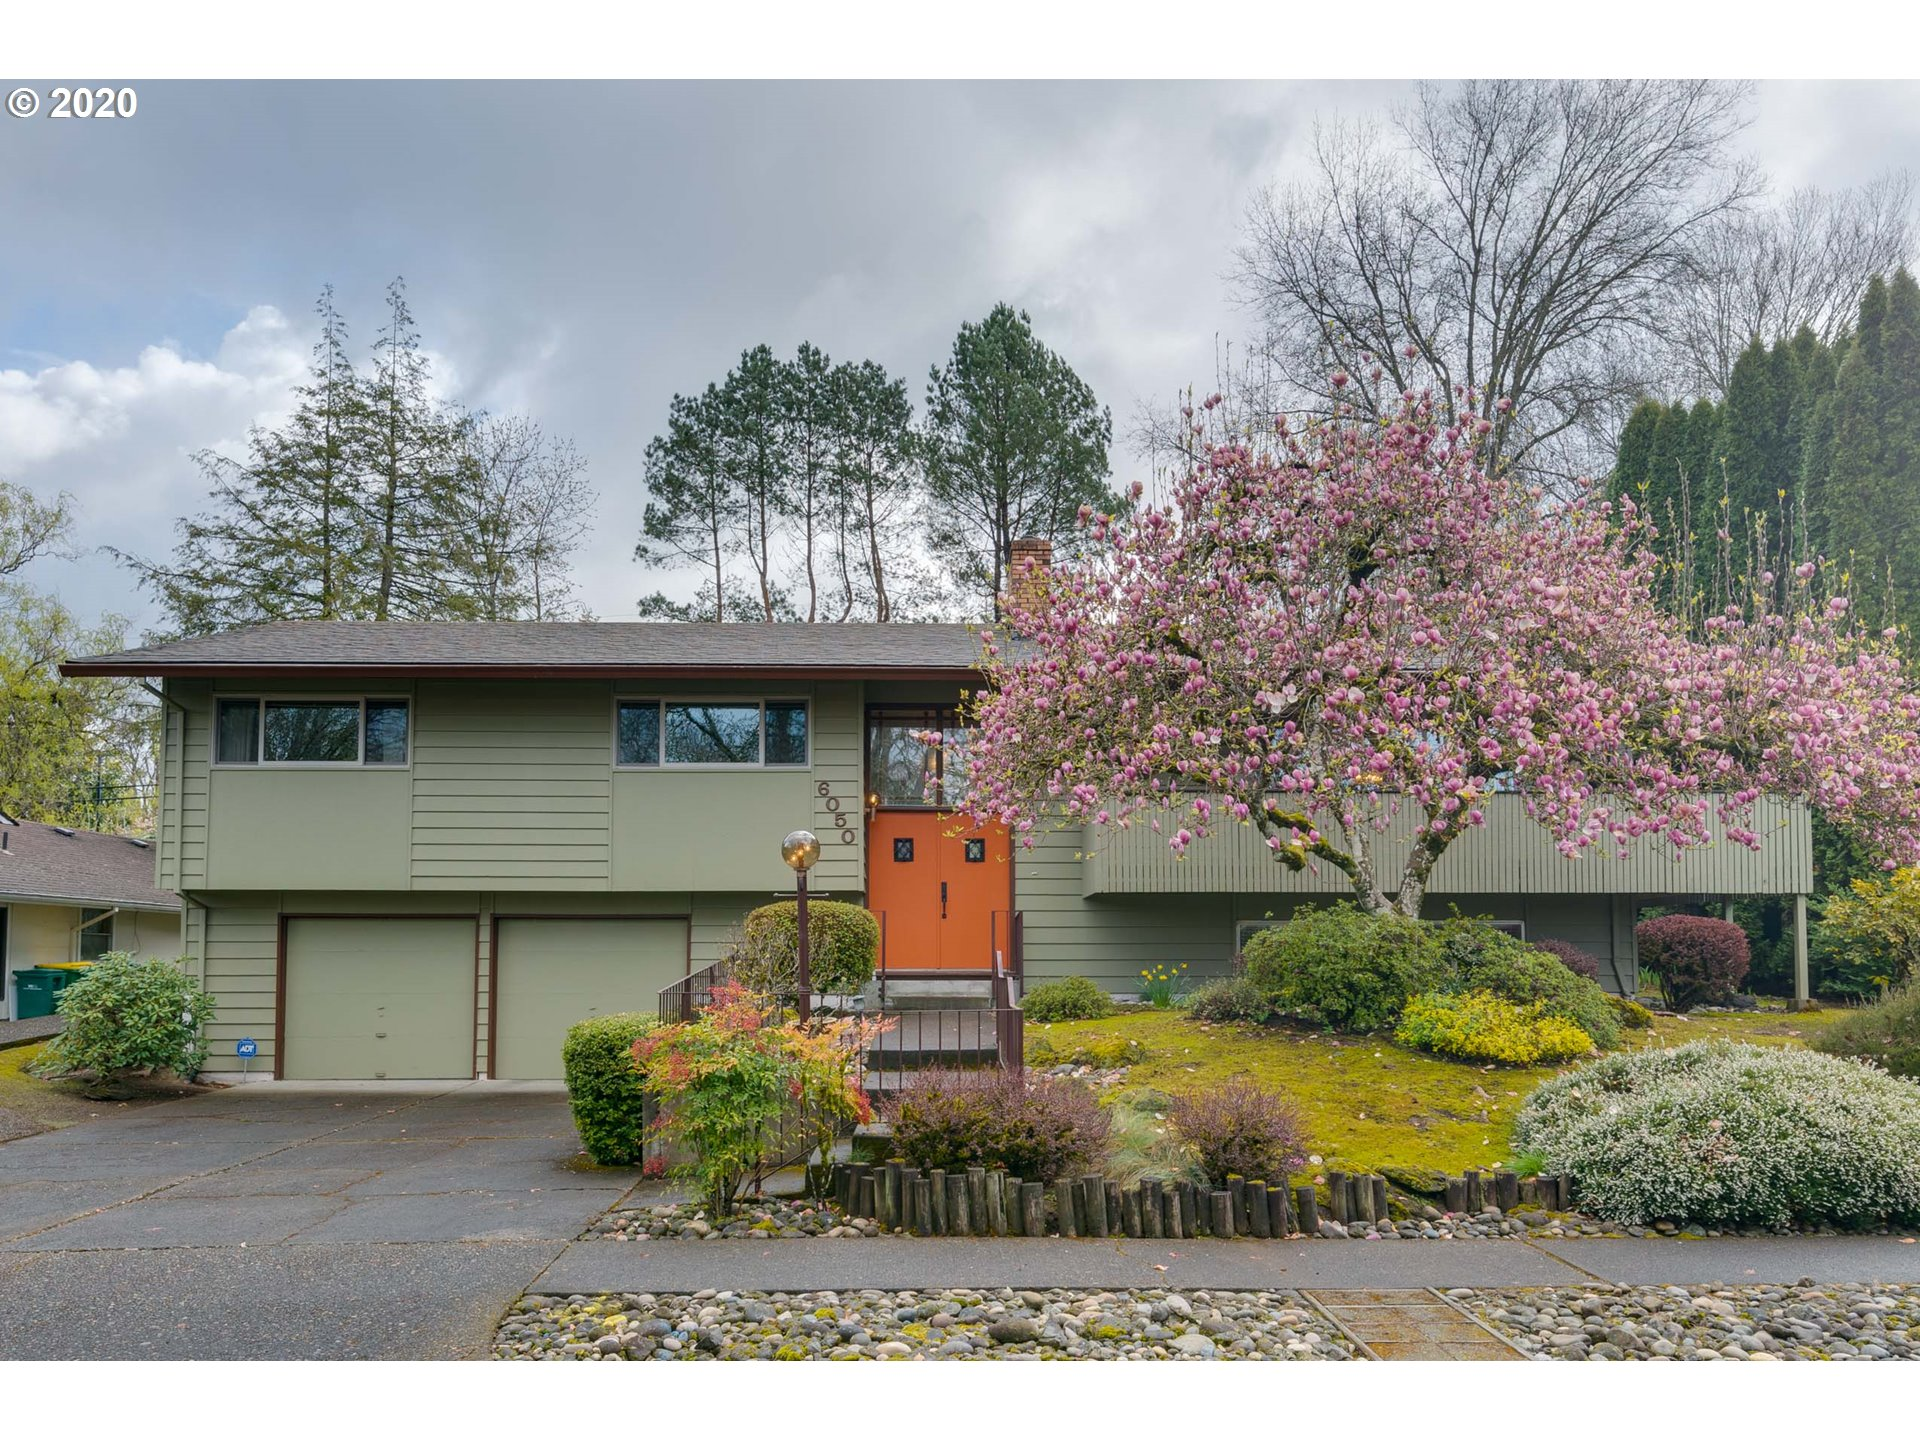 See Virtual Tour to explore this terrific, mid-century split-level in desirable Royal Woodlands.   Original owner w master suite, chic vaulted living room w/ wrap around balcony, dependable floor plan w informal eating area off kitchen &  basement family rm & bonus office/den. Oversized 8200 sf lot w delightful backyard. 2018: New upper windows, ext paint, & slider doors. Great opportunity to live in an utterly charming mid-century neighborhood complete with egg hunts and 4th of July parades!